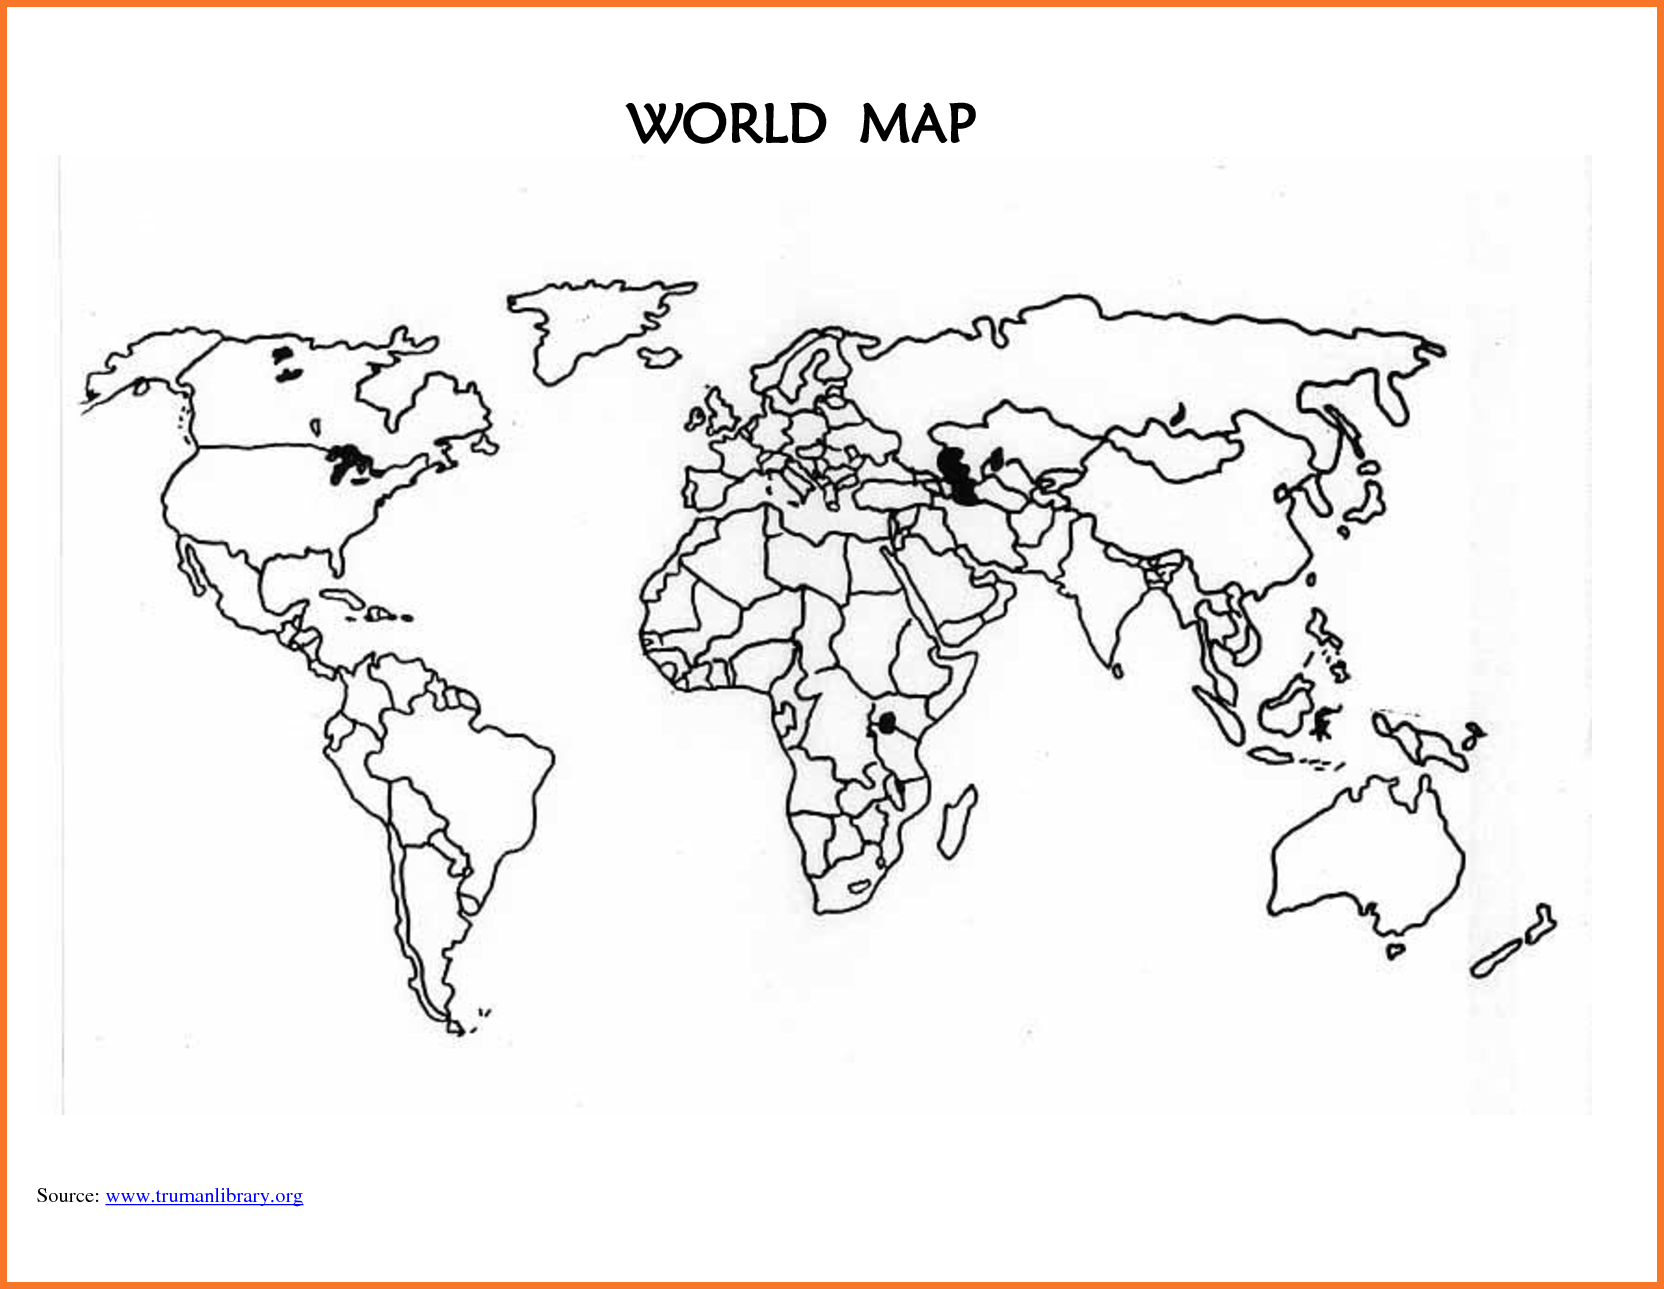 World map template printable gidiyedformapolitica world map template printable gumiabroncs